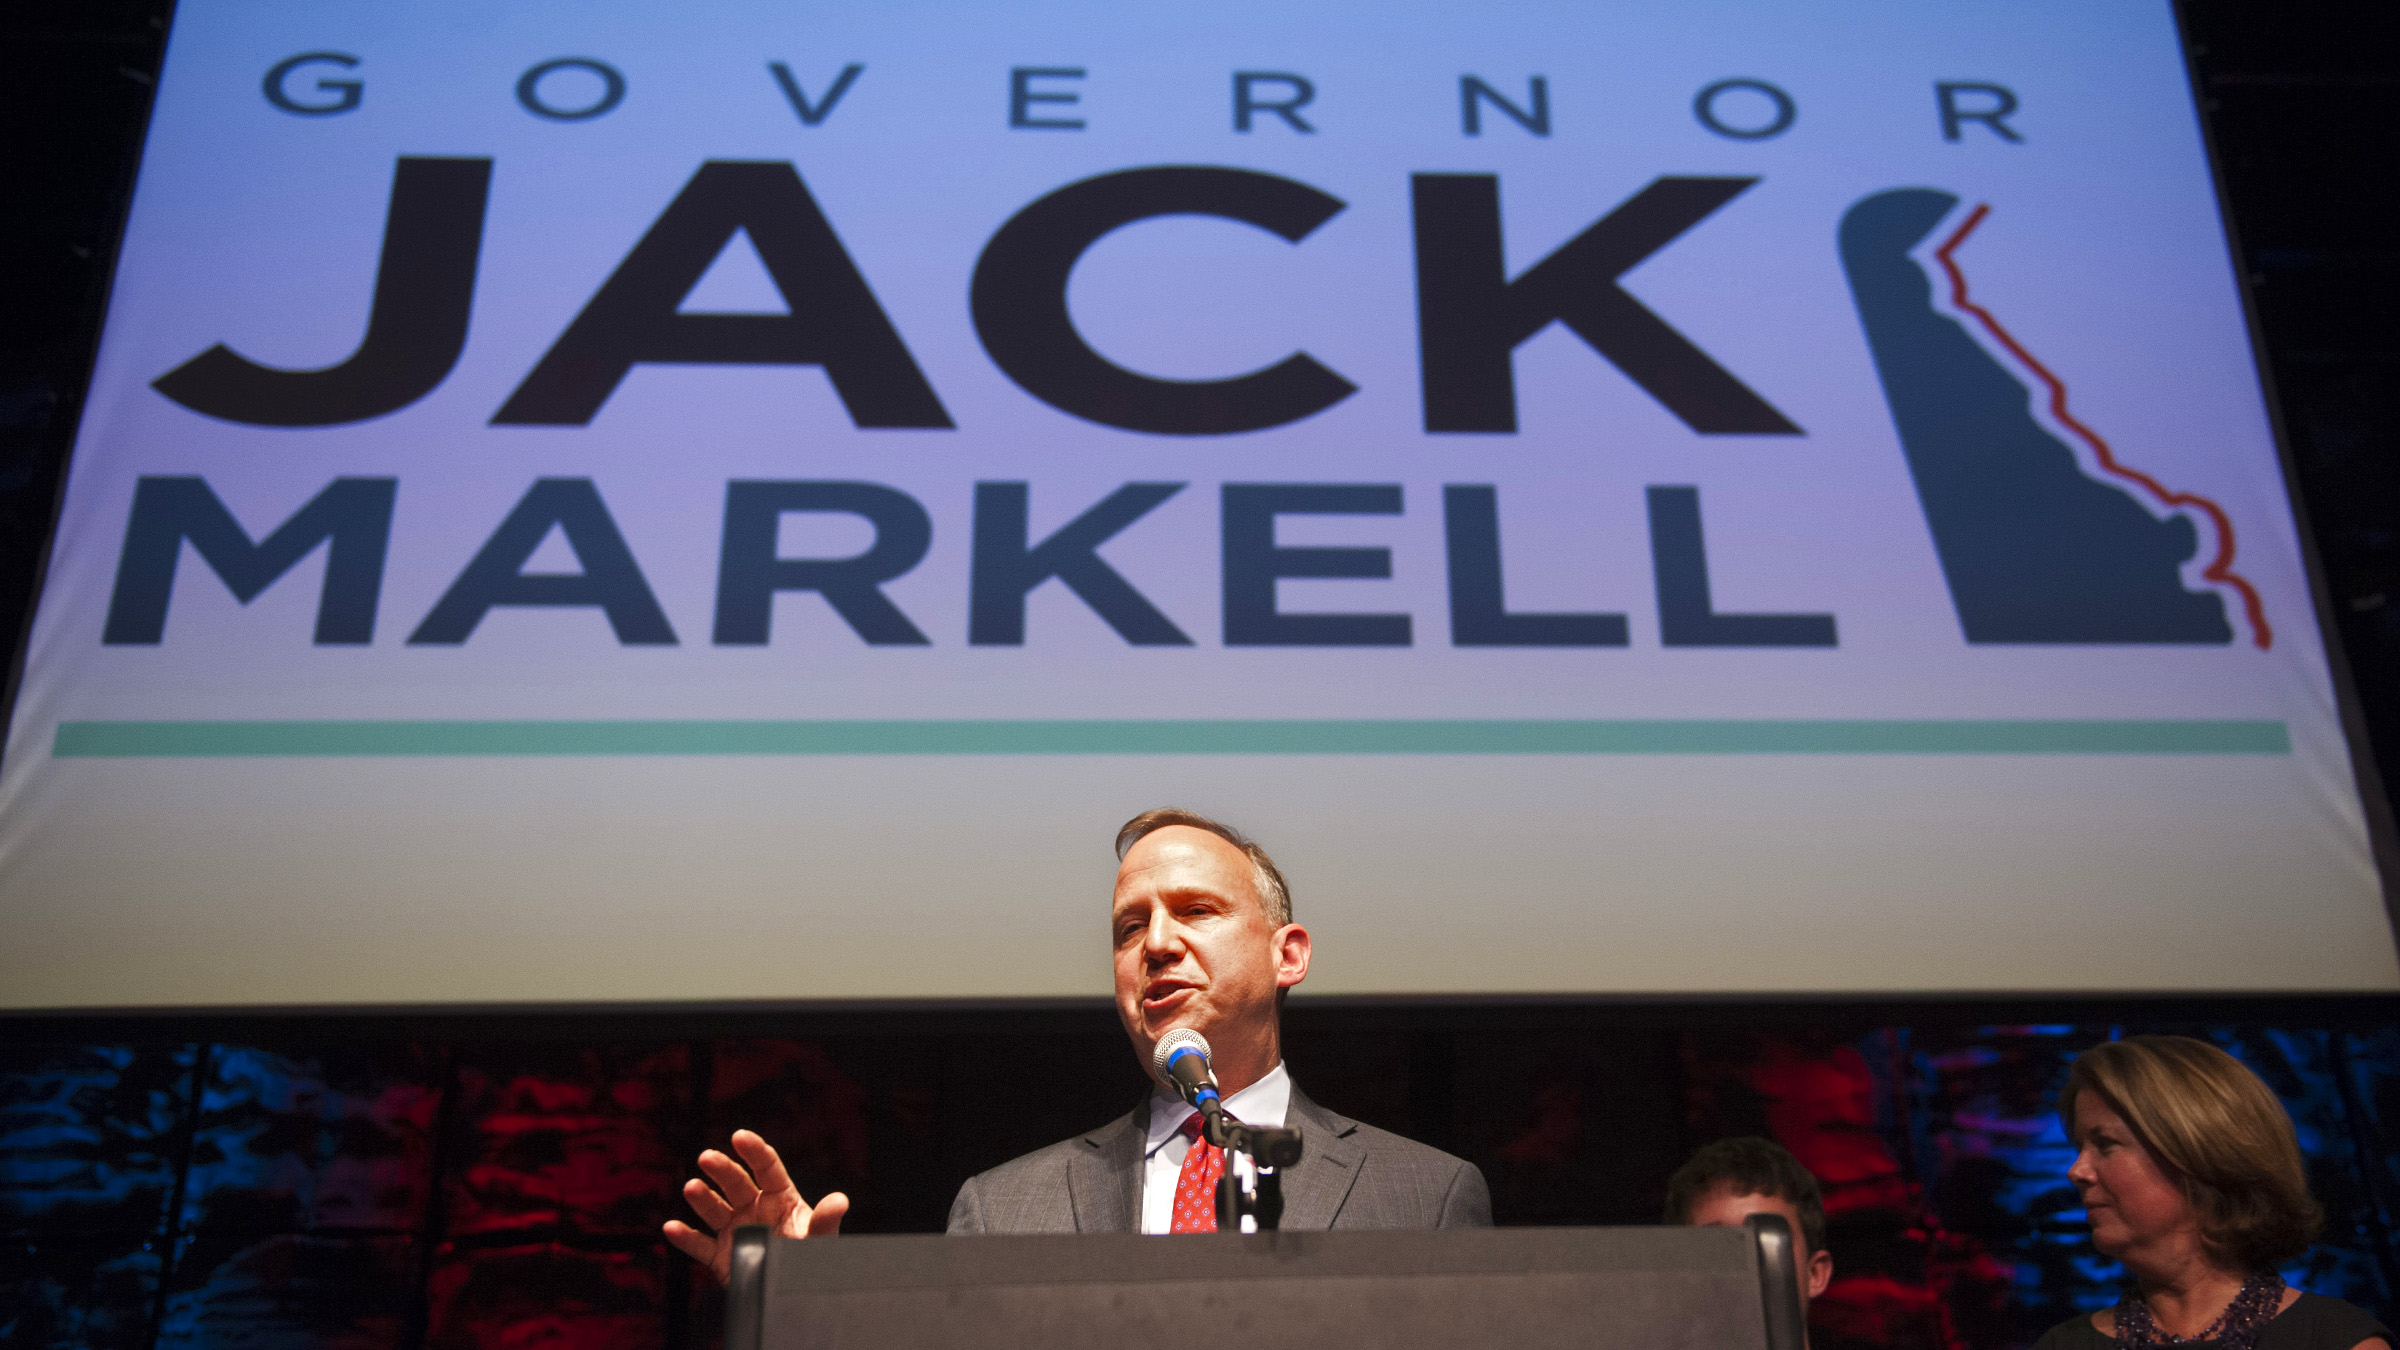 Delaware Gov. Jack Markell addresses supporters as he celebrates his re-election at the Delaware Democratic Party Election Night at the Queen theater in Wilmington, Del., Tuesday, Nov. 6, 2012.